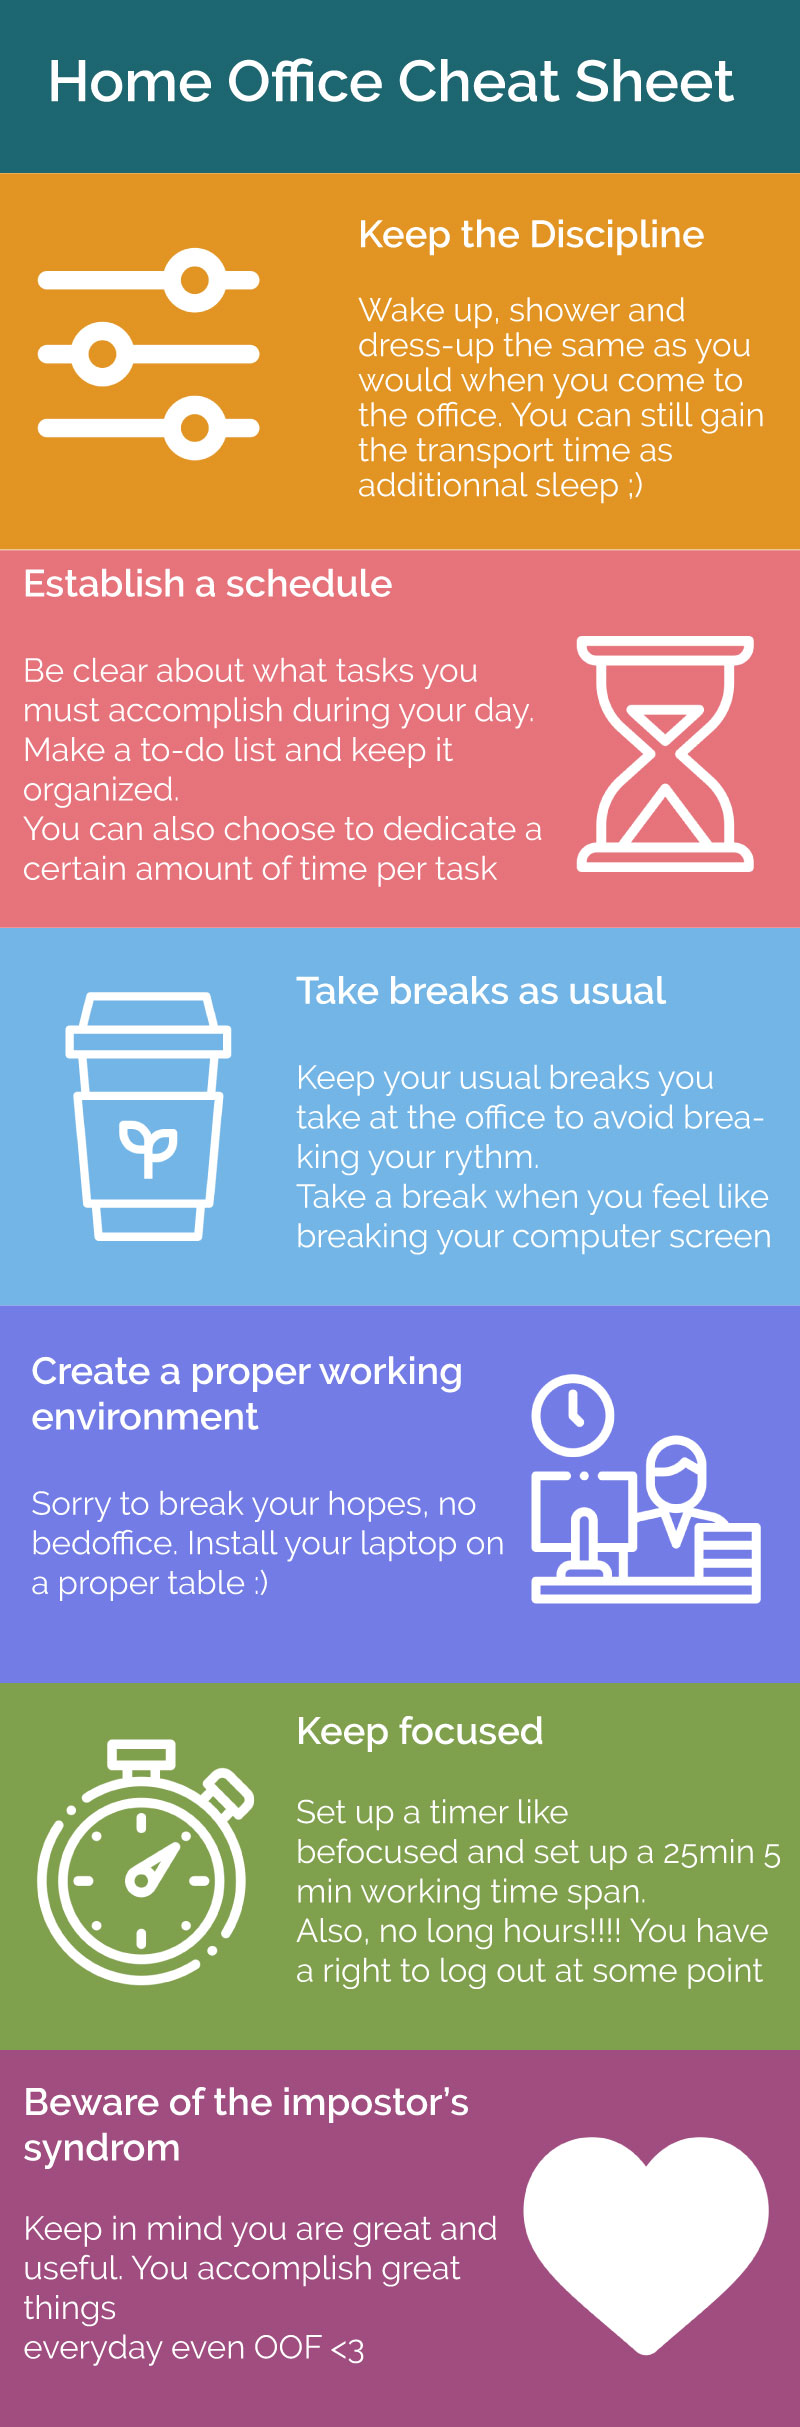 home-office-cheat-sheet-infographic